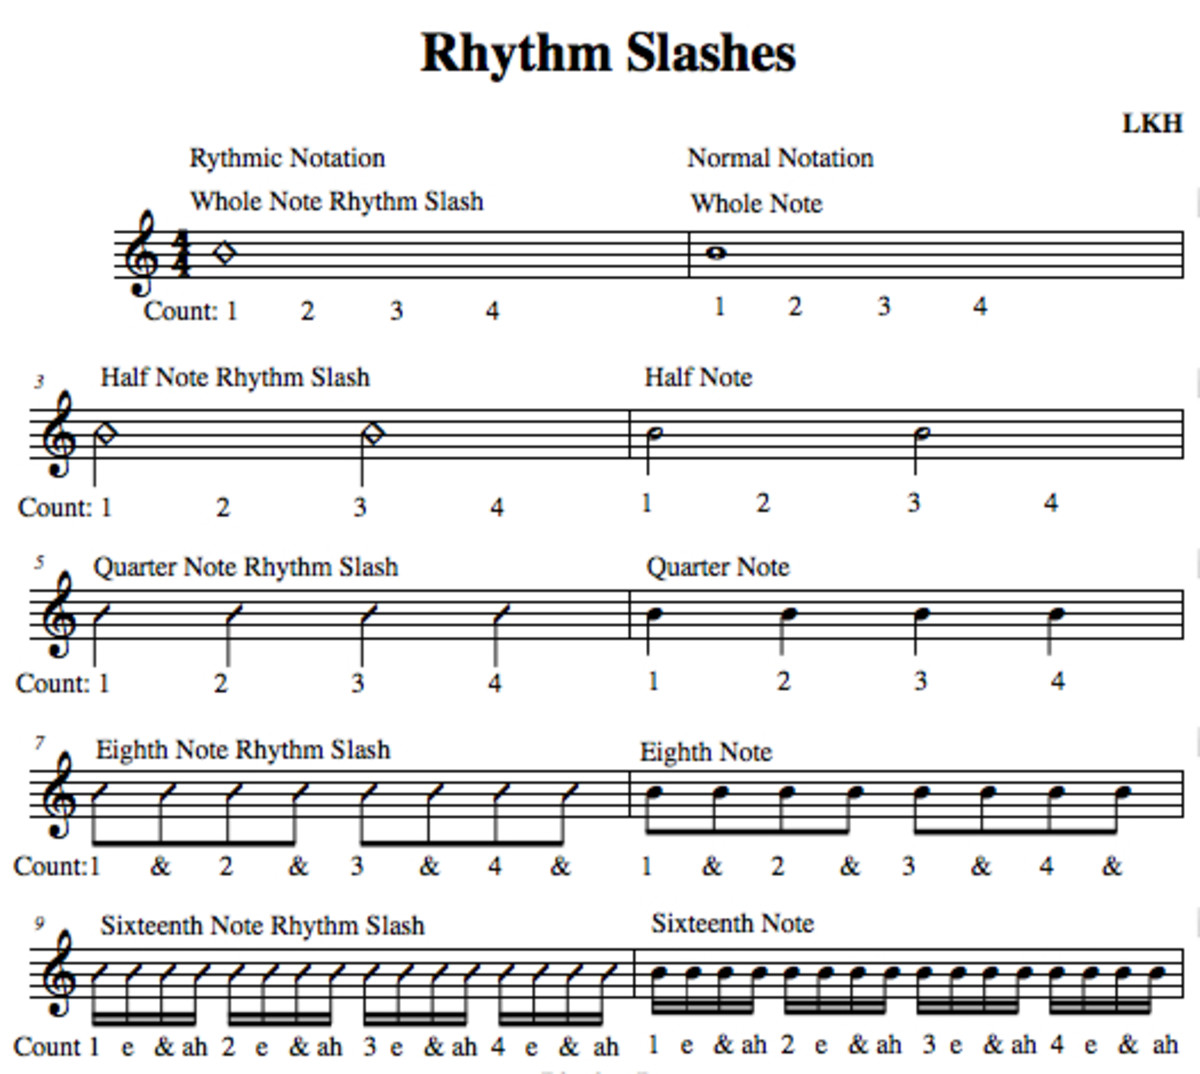 Rhythm Slash notation and it's relationship to Normal Notation.